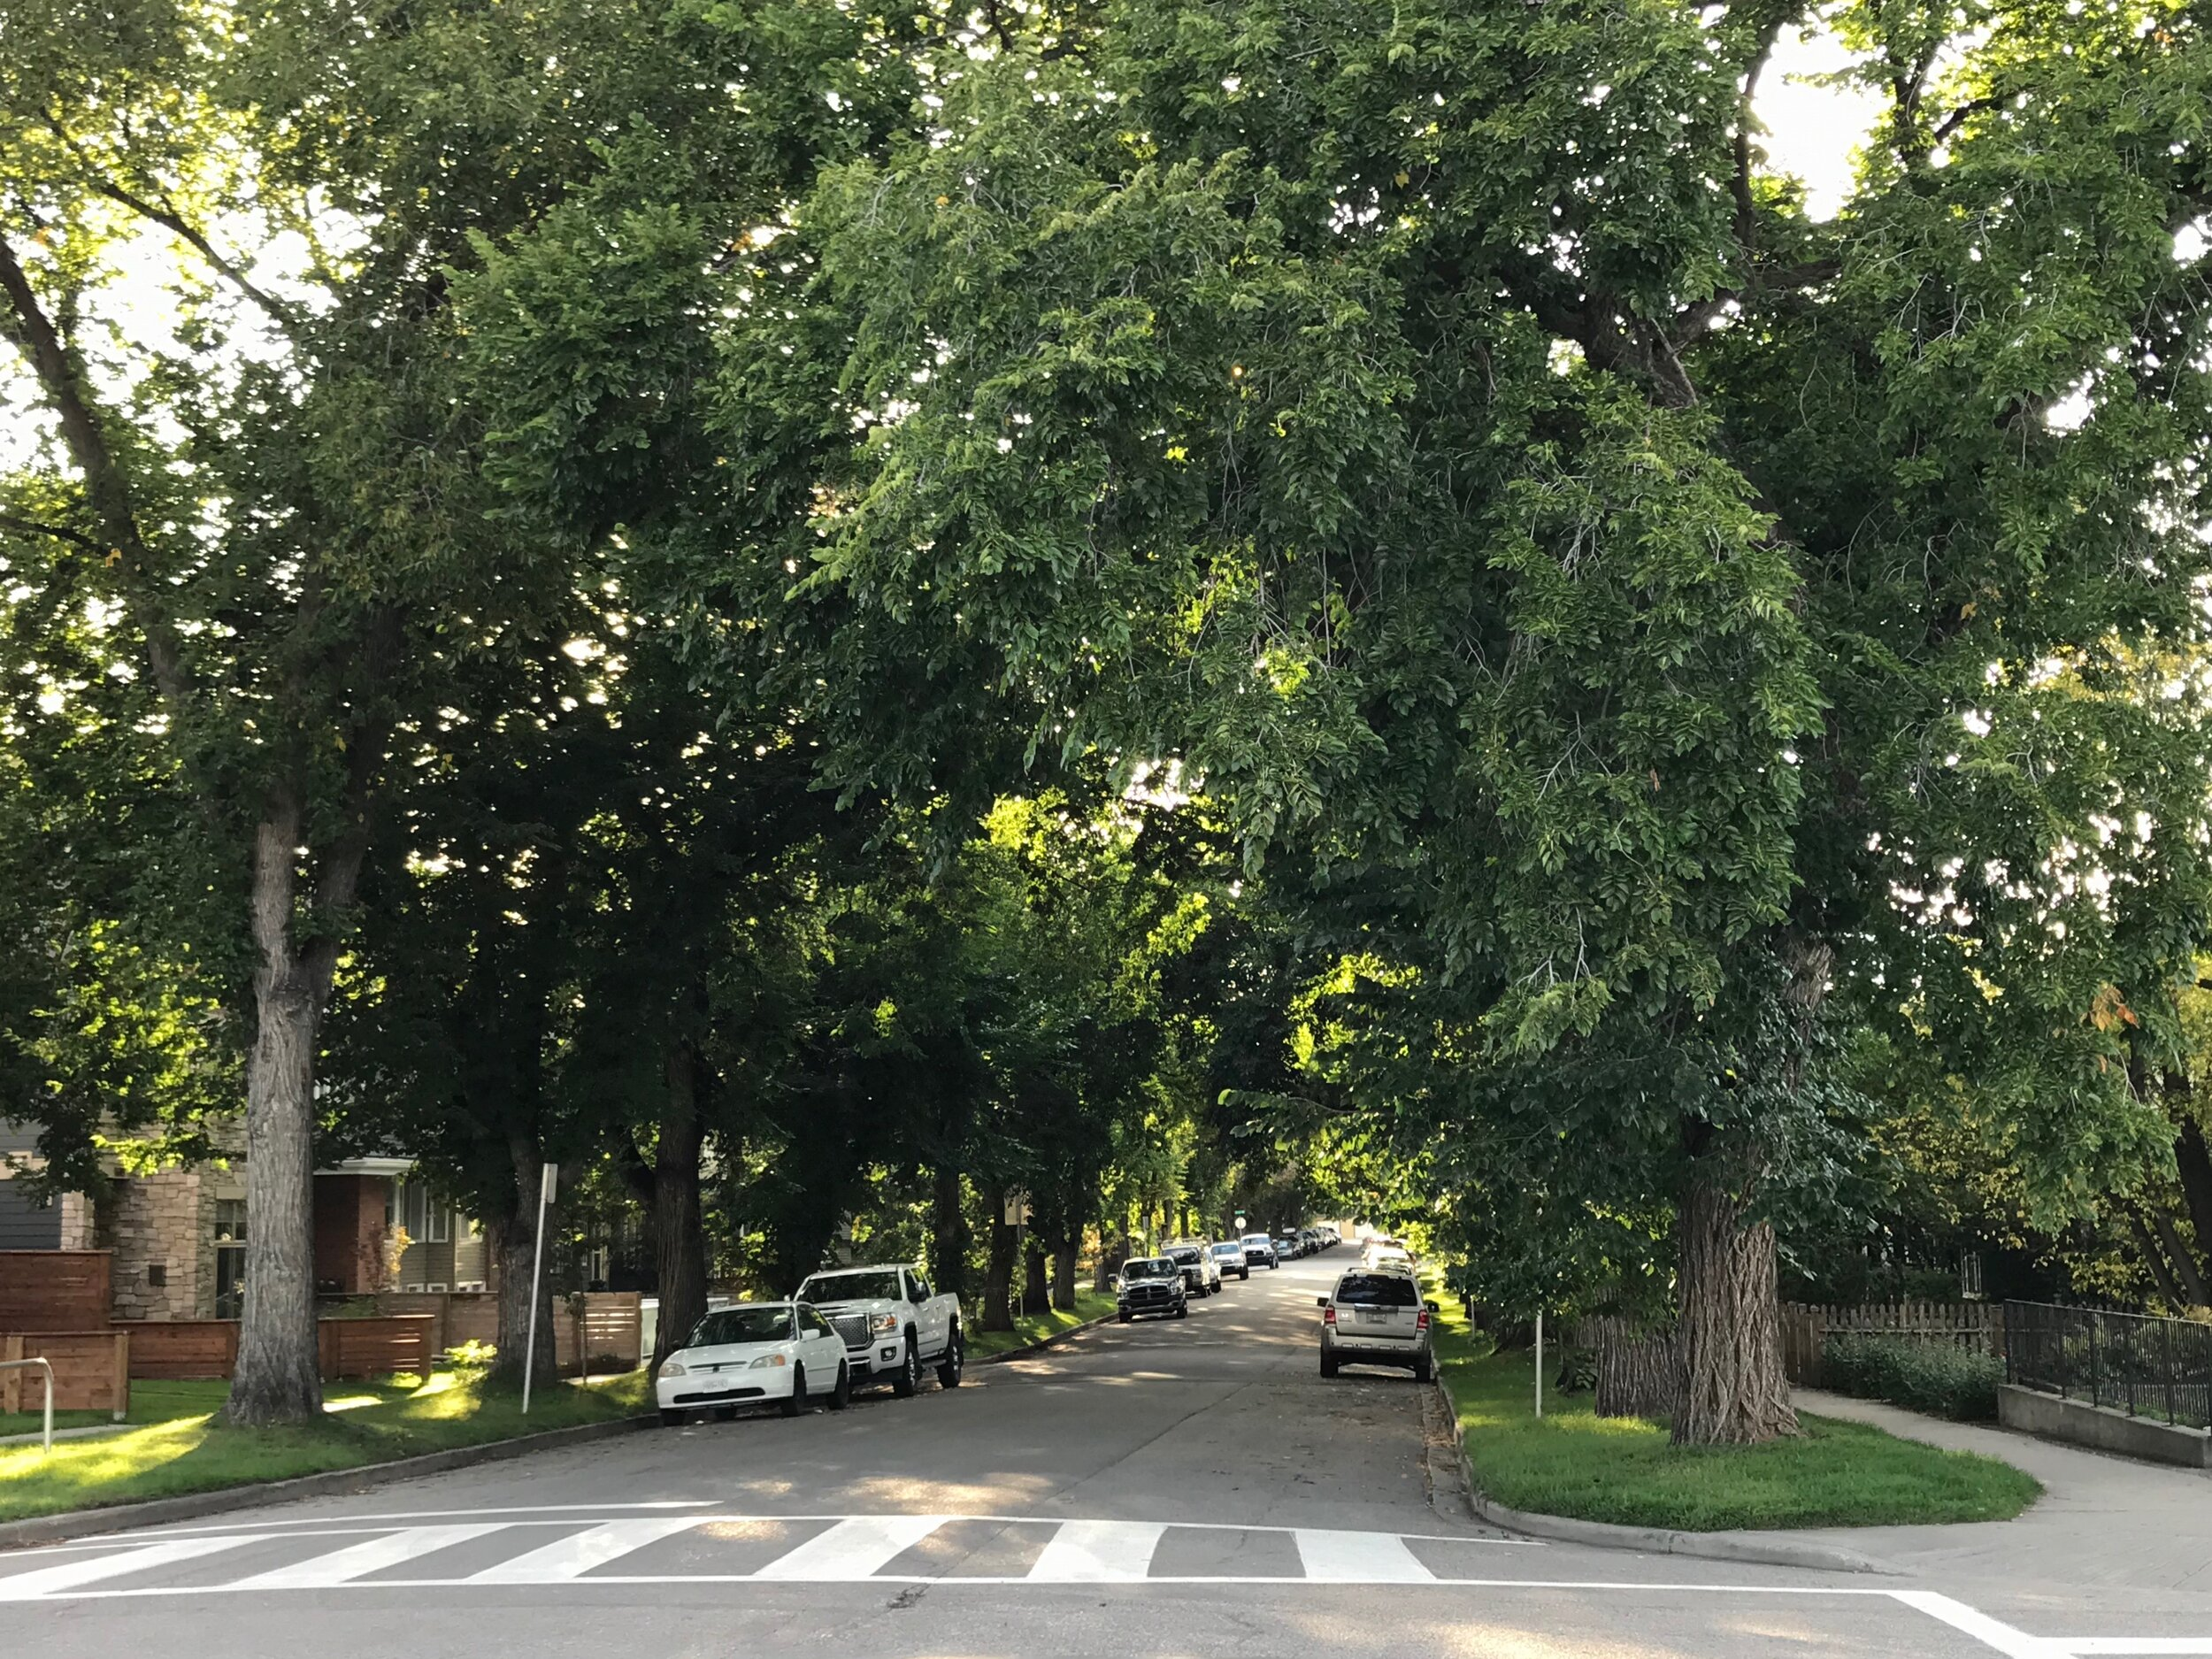 Sunalta has perhaps the best tree canopied streets in Calgary.